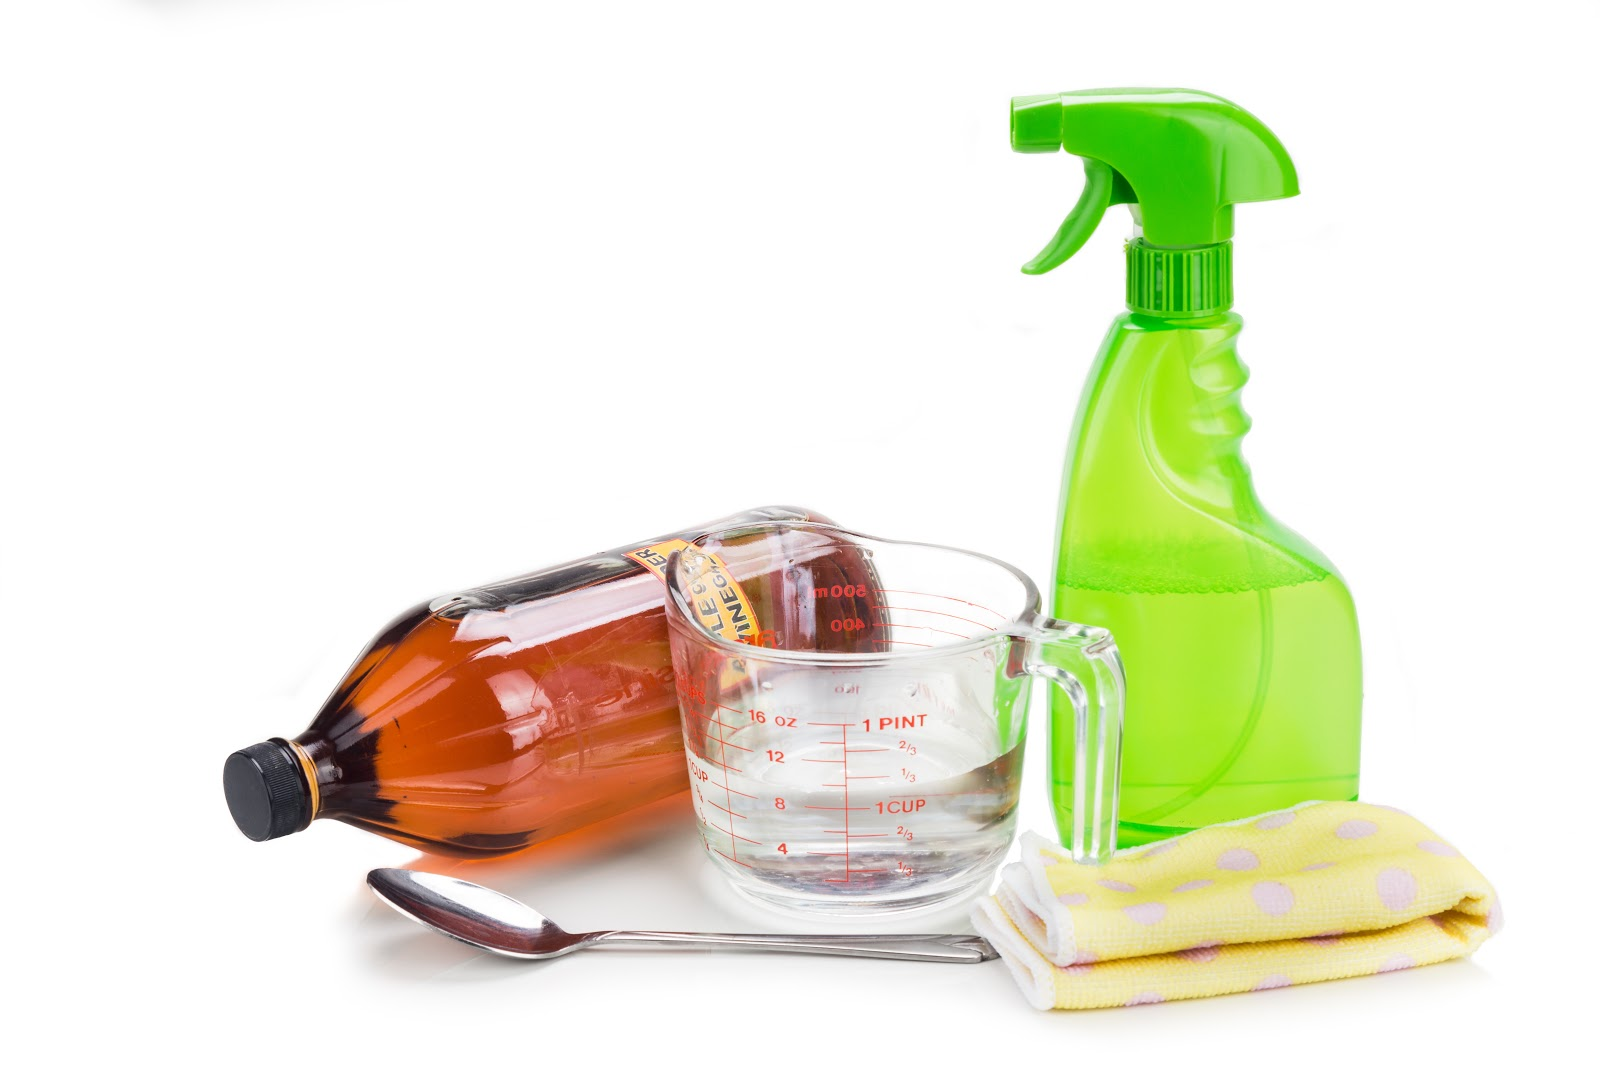 Homemade cleaning solution with vinegar